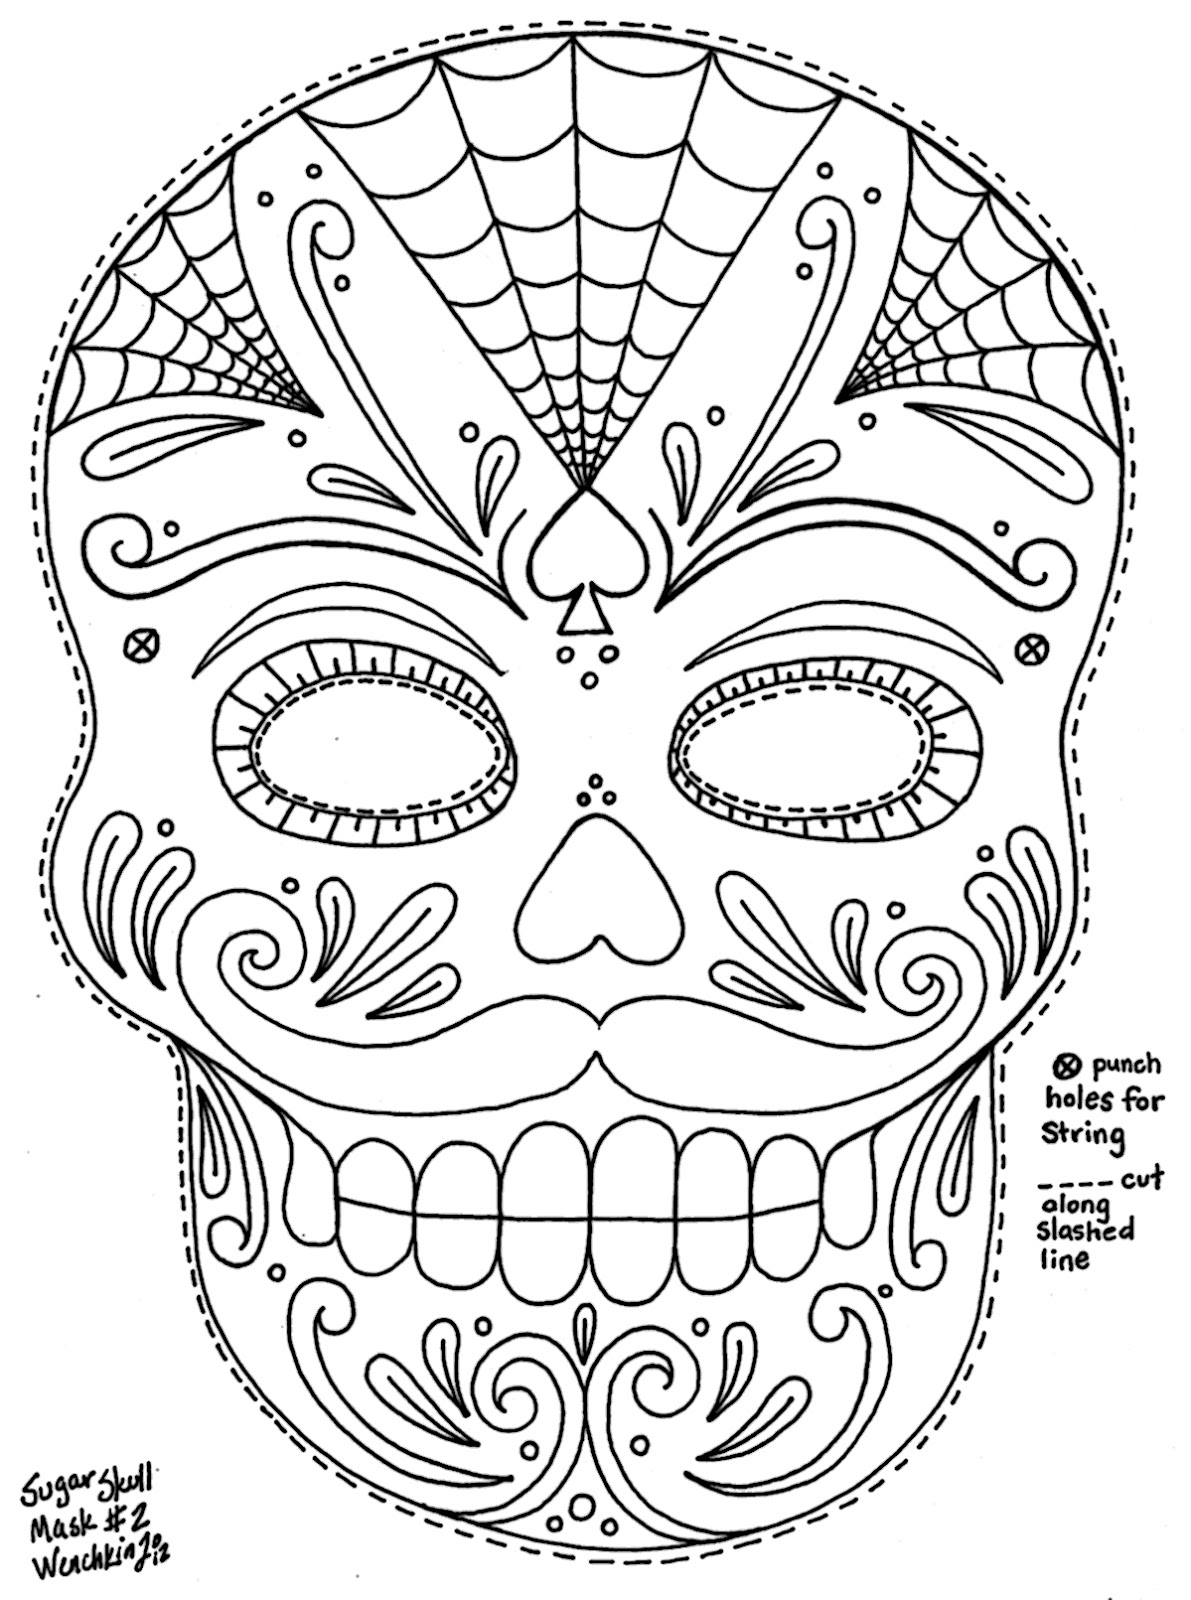 day of the dead template sugar skull template sugar skull coloring page sugar skull the of day template dead